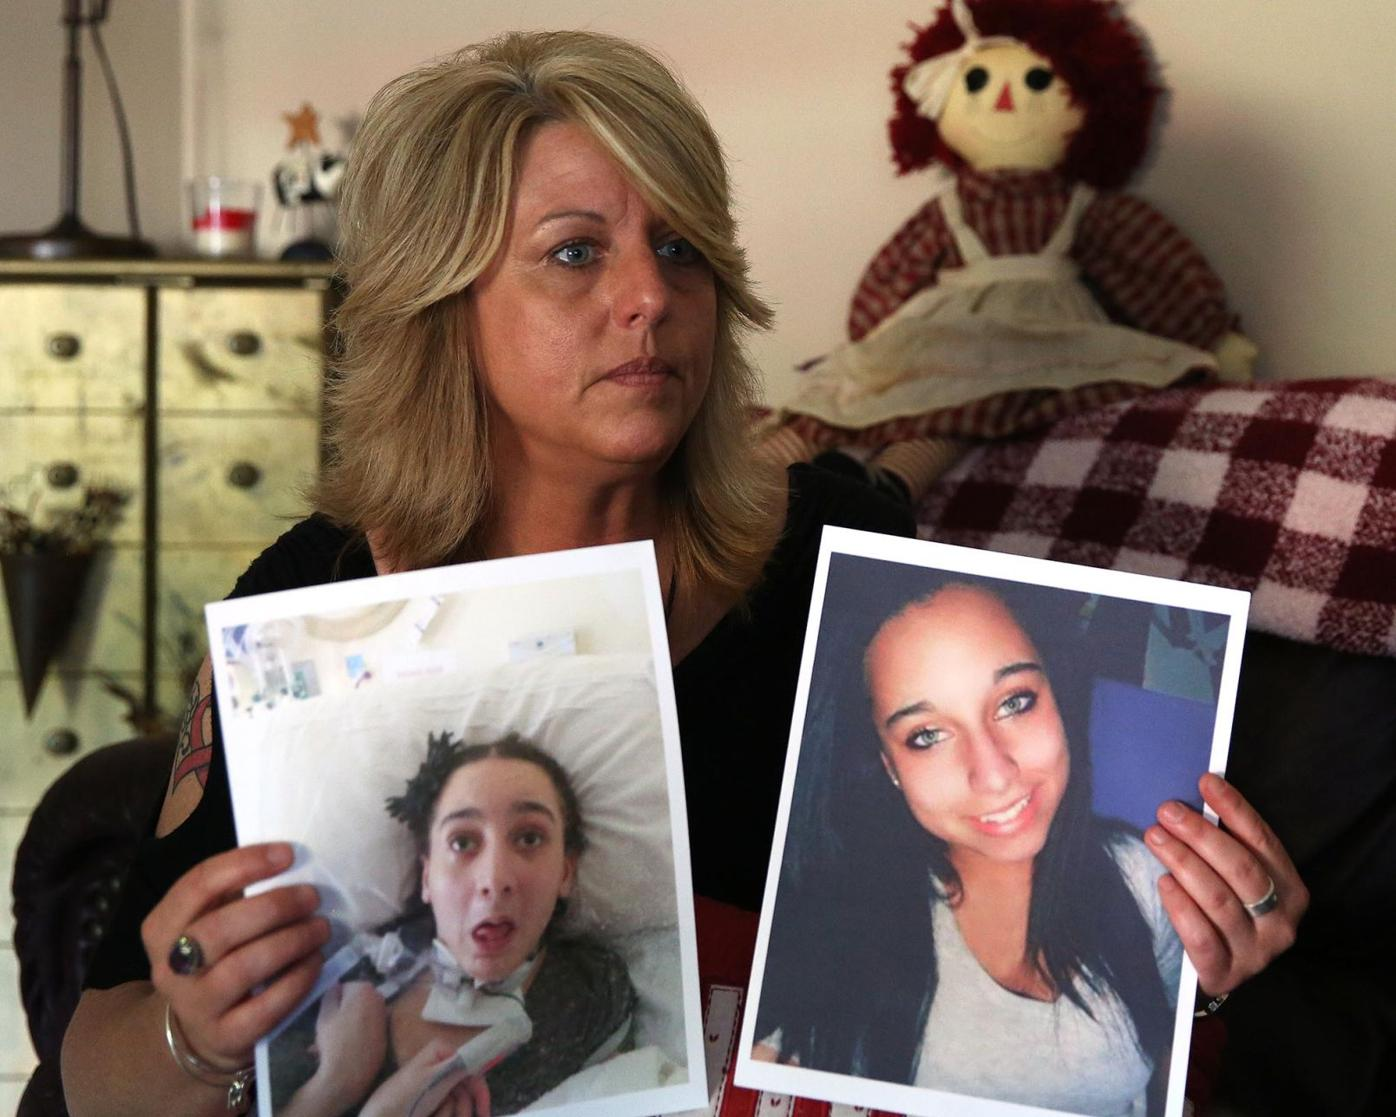 Tolland mom works to help opiod addicts